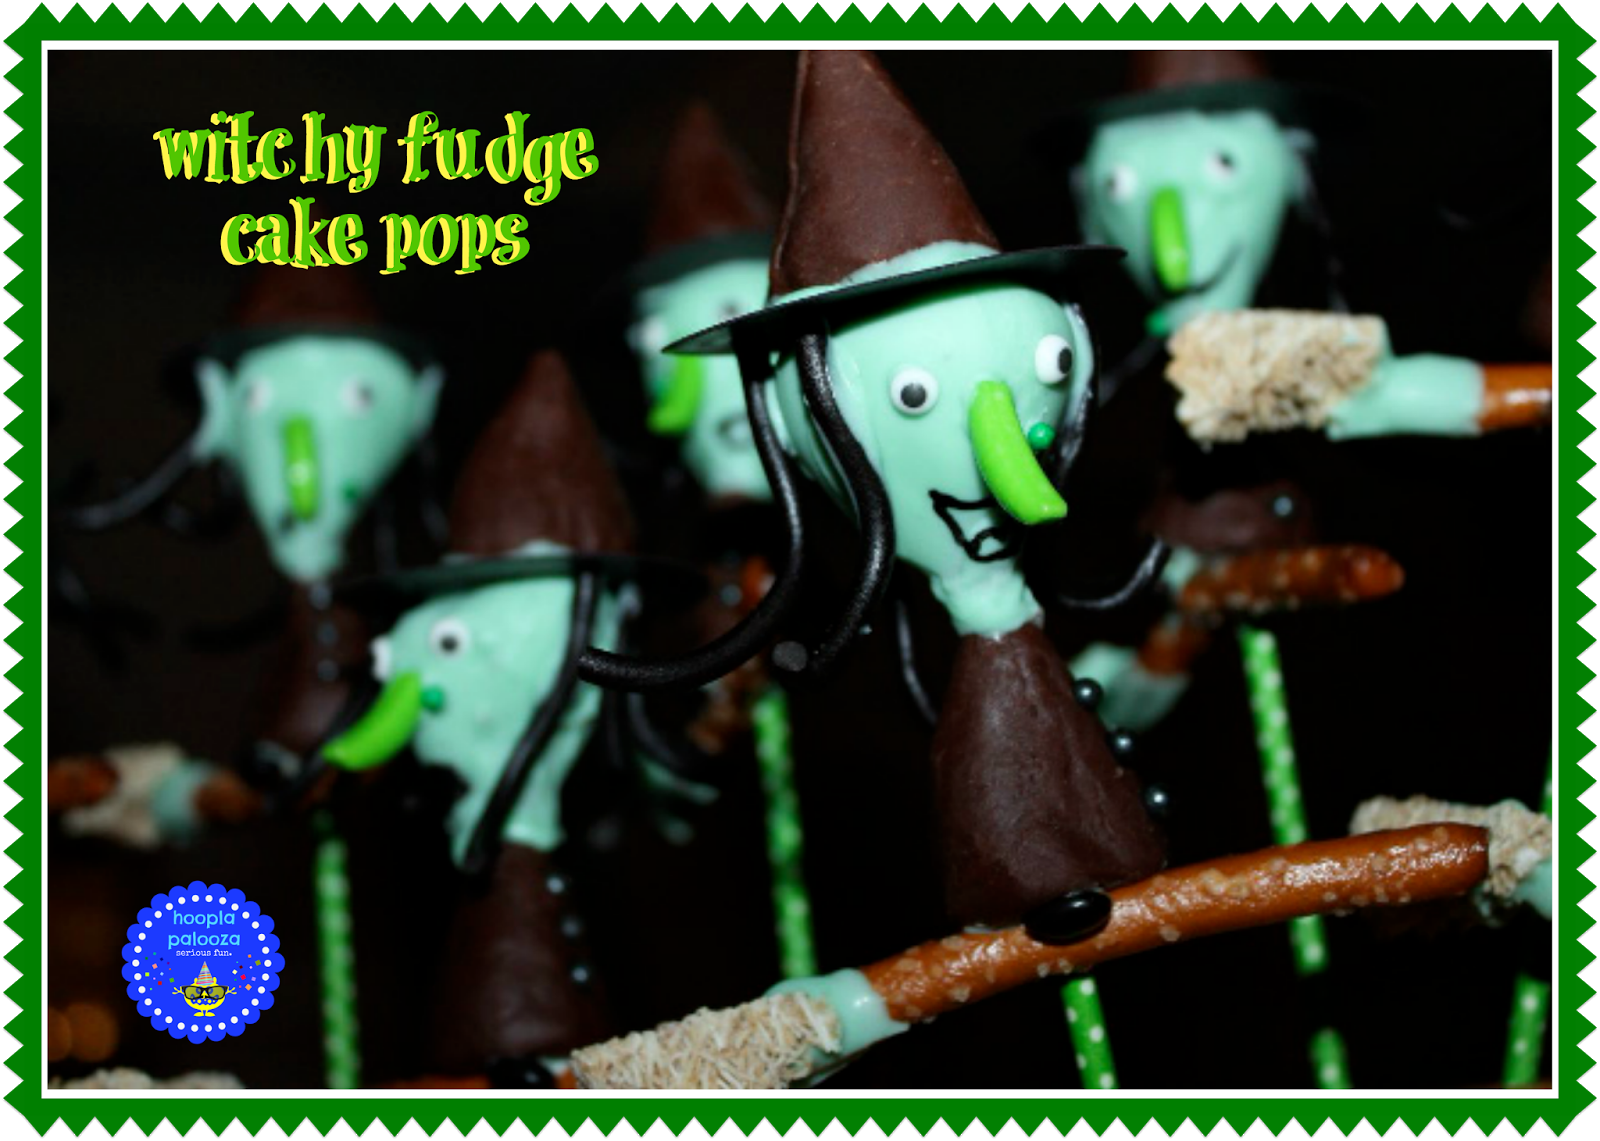 Witchy Fudge Cake Pops from Hoopla Palooza